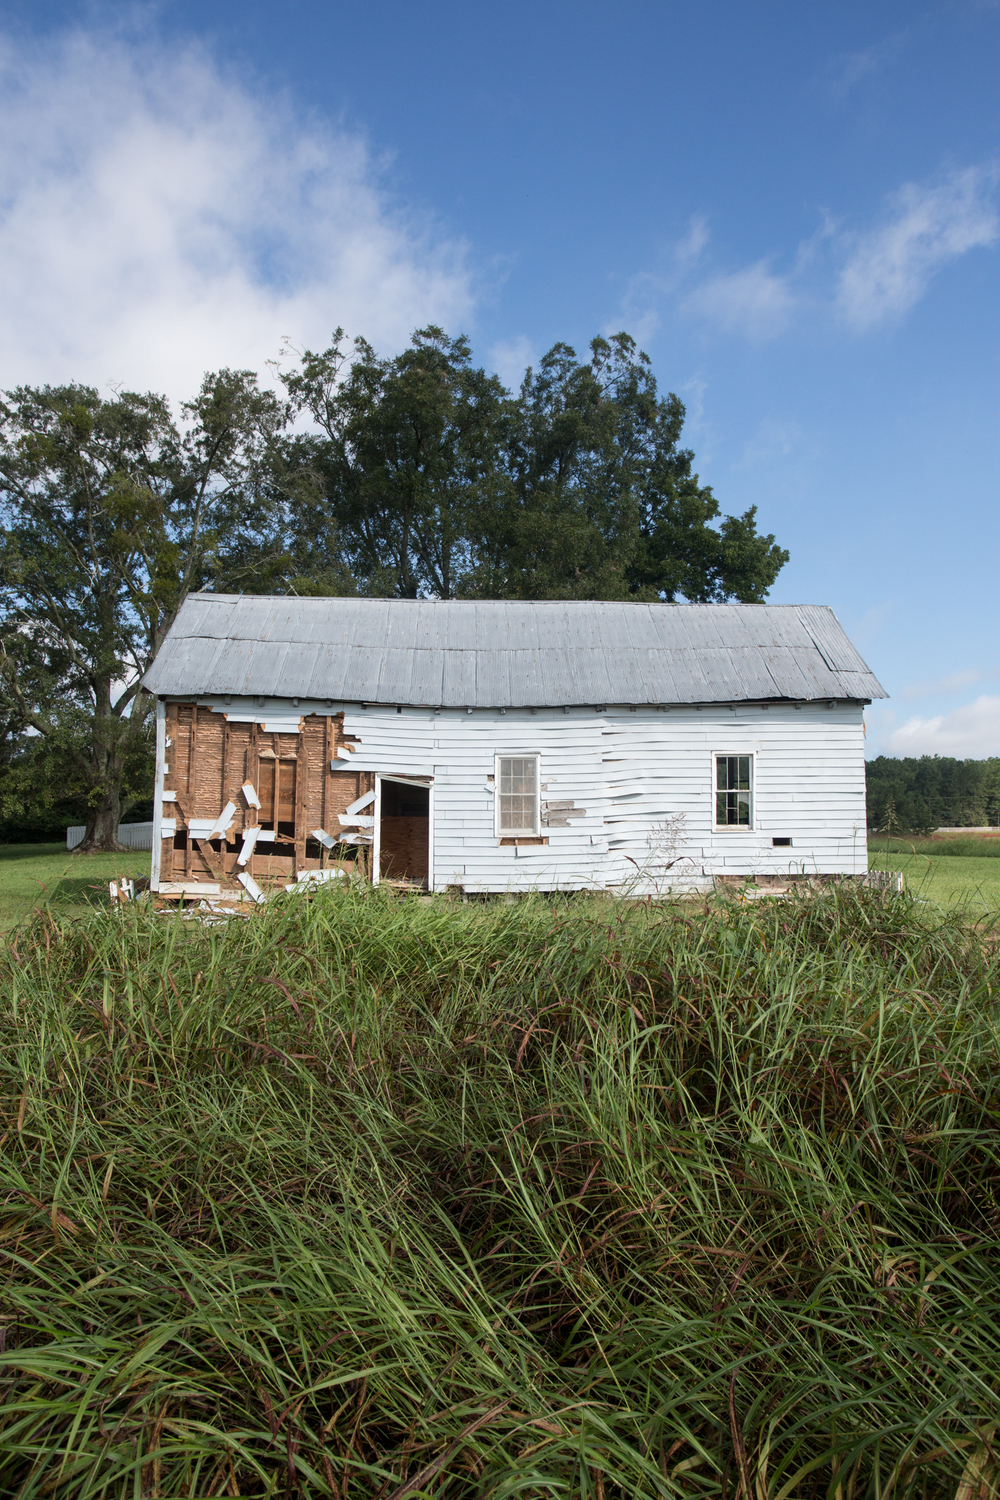 sons of sawdust_schoolhouse demolition & salvage-201509112576.jpg